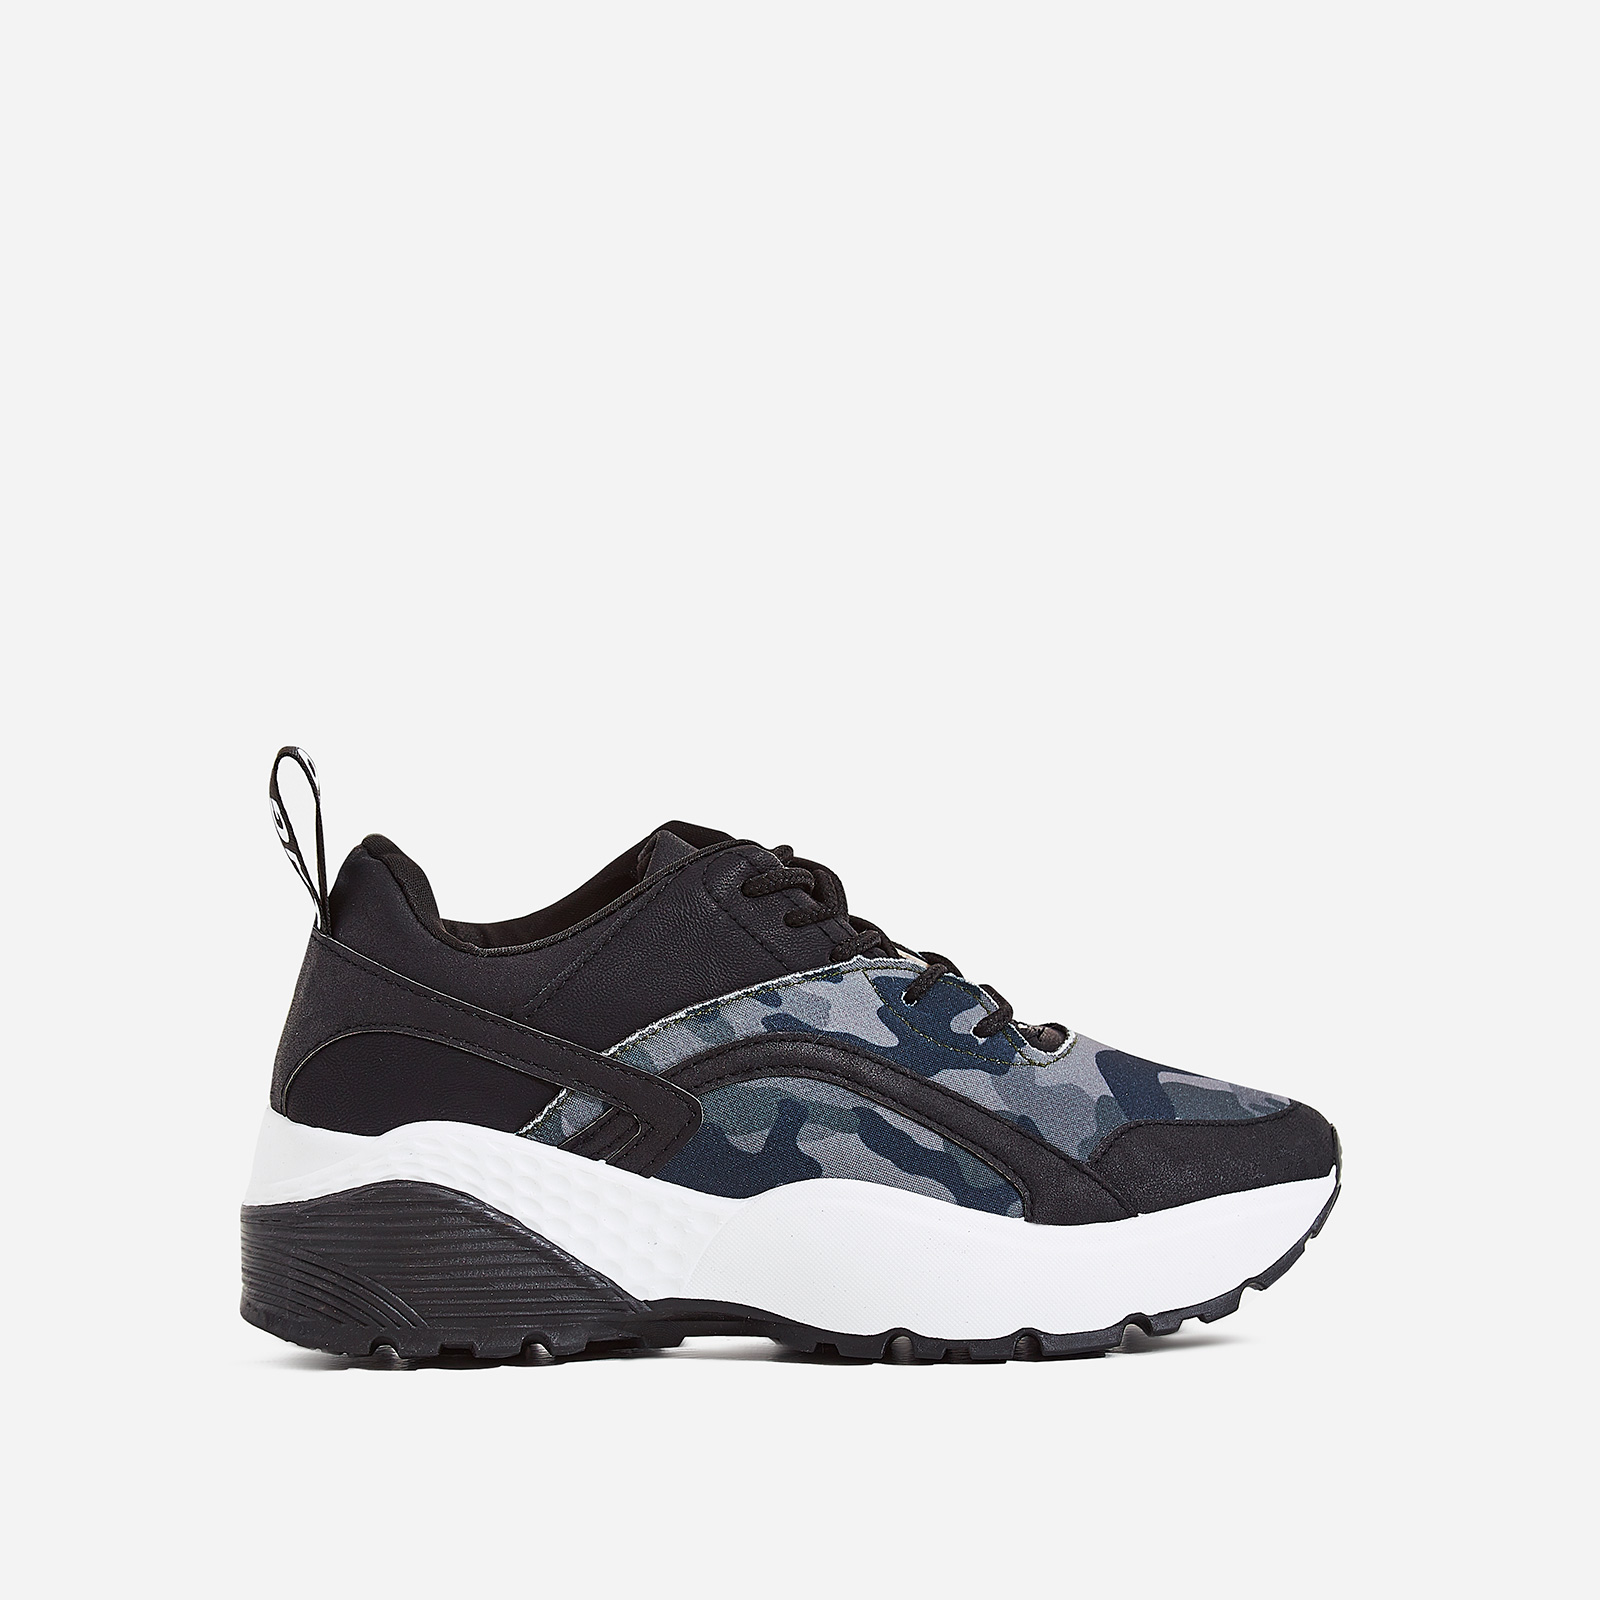 Aero Chunky Sole Trainer In Black Camouflage